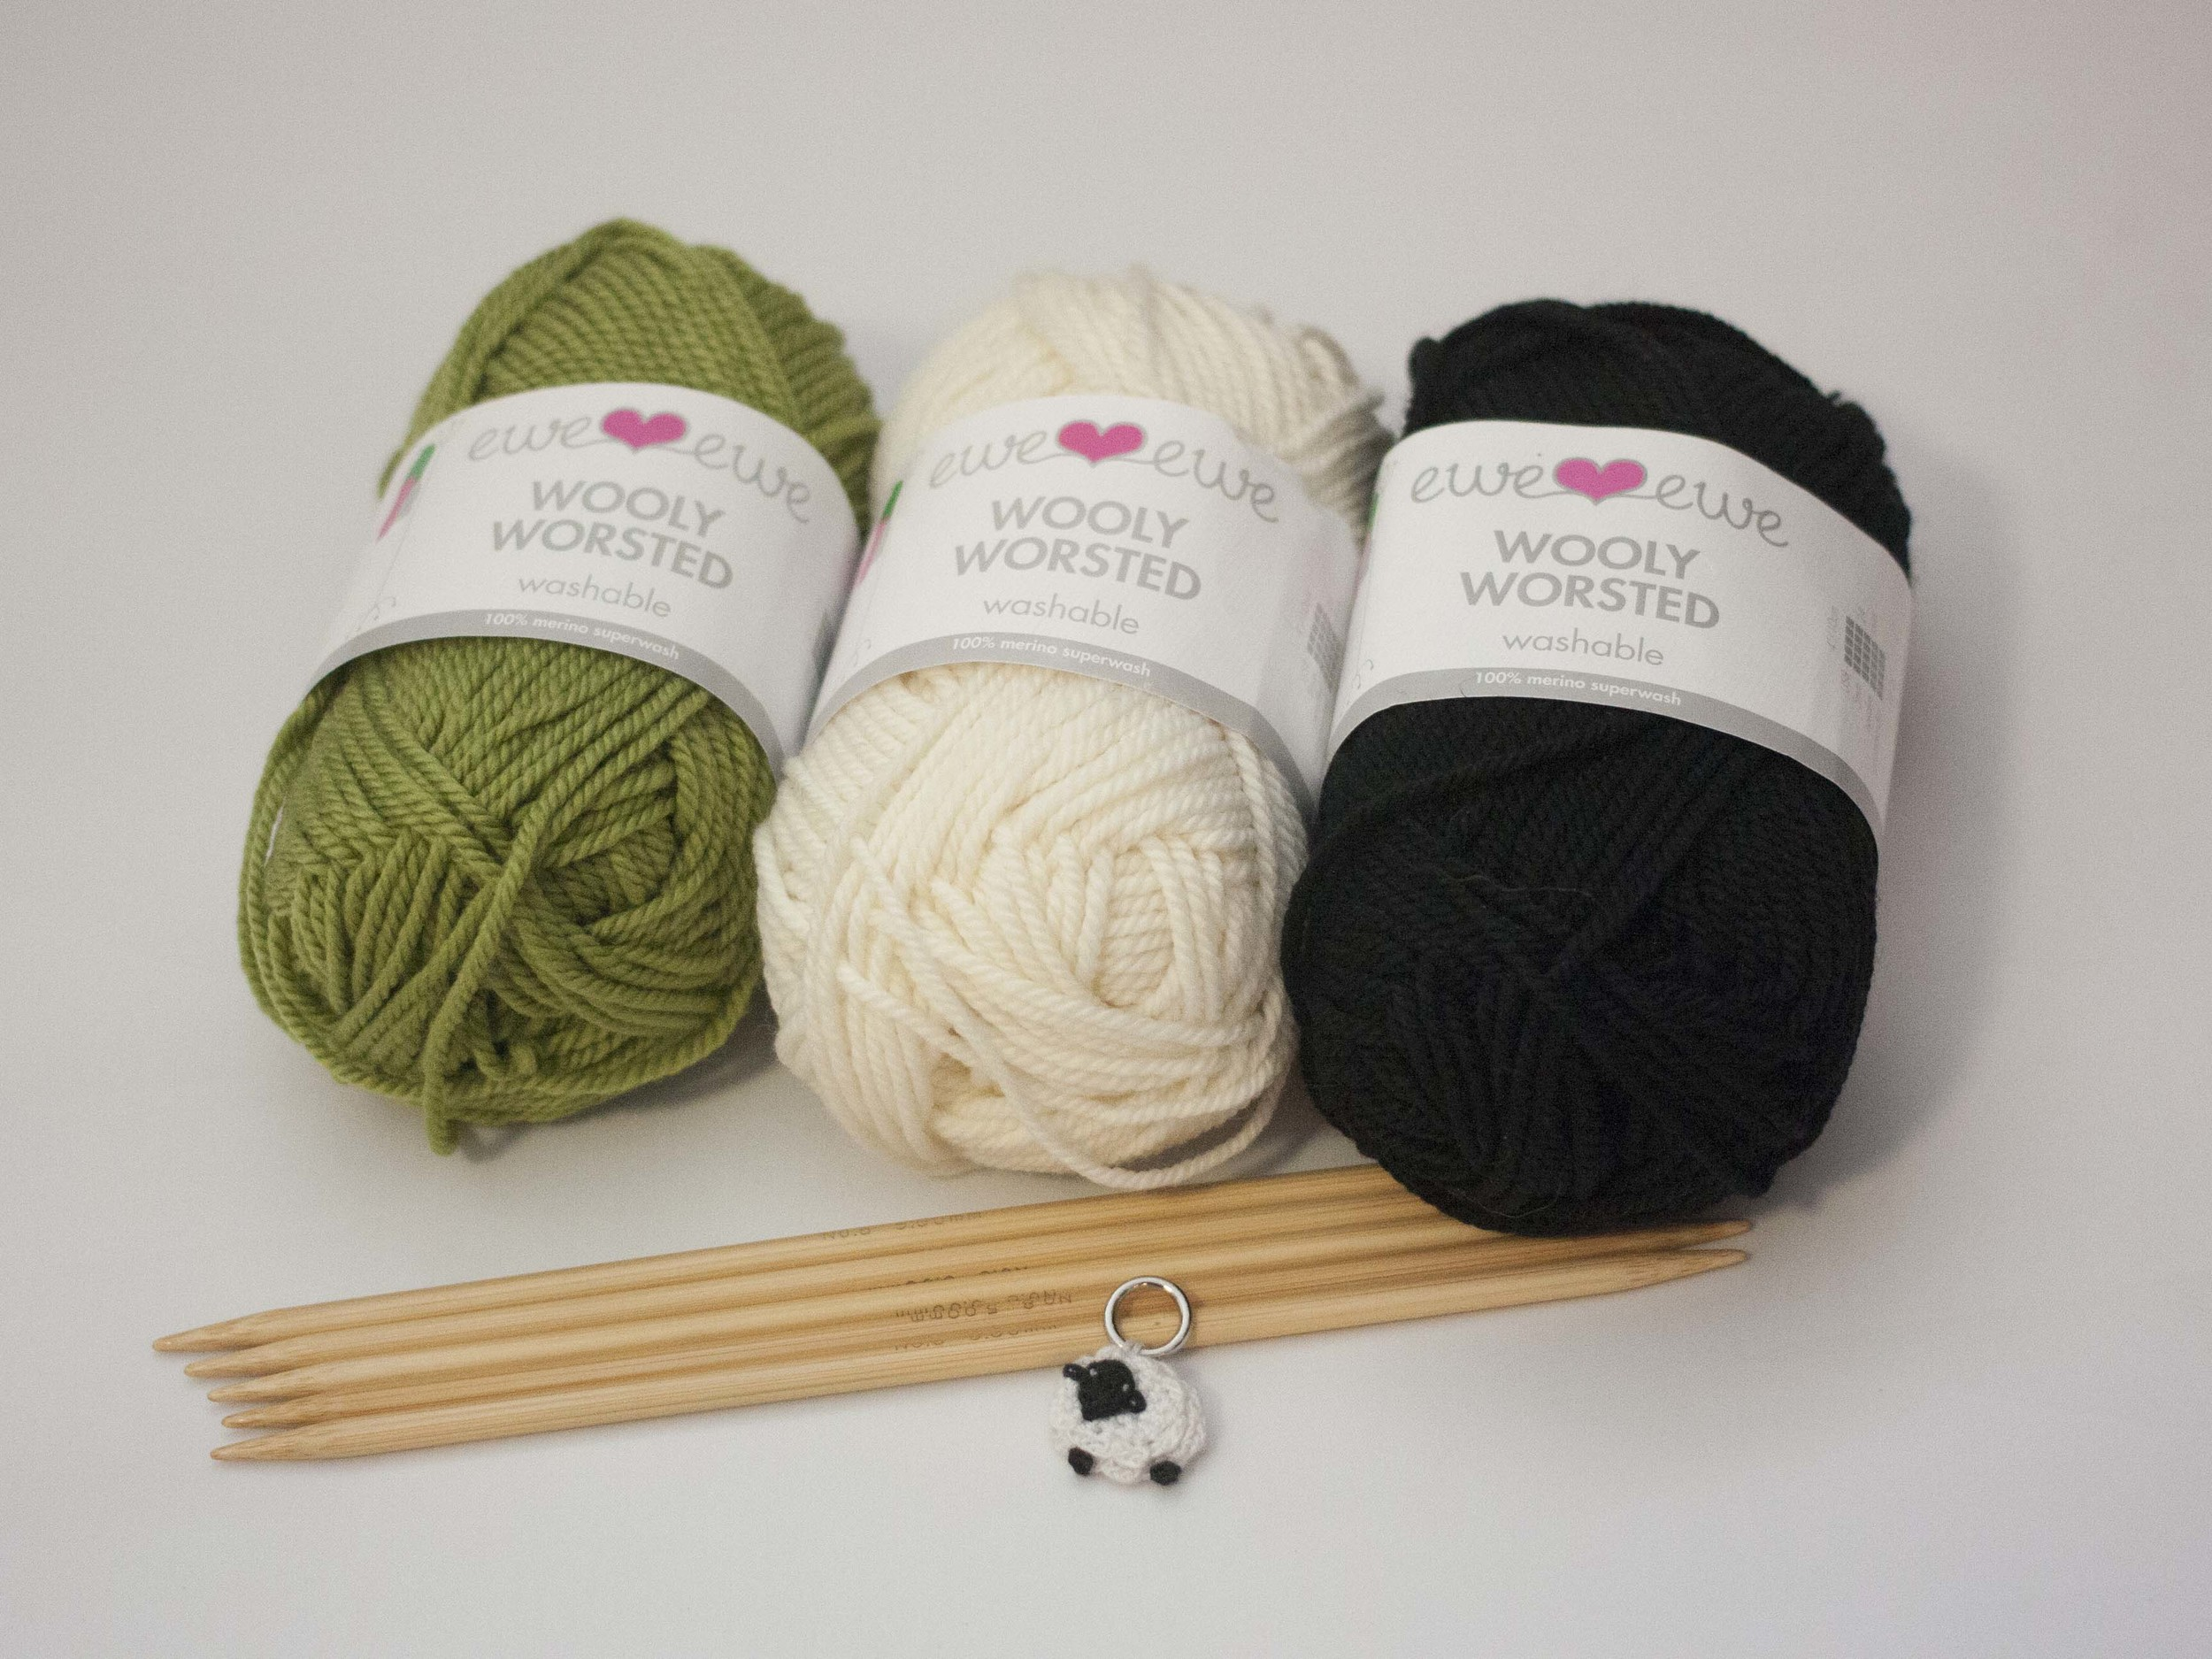 Knit along supplies